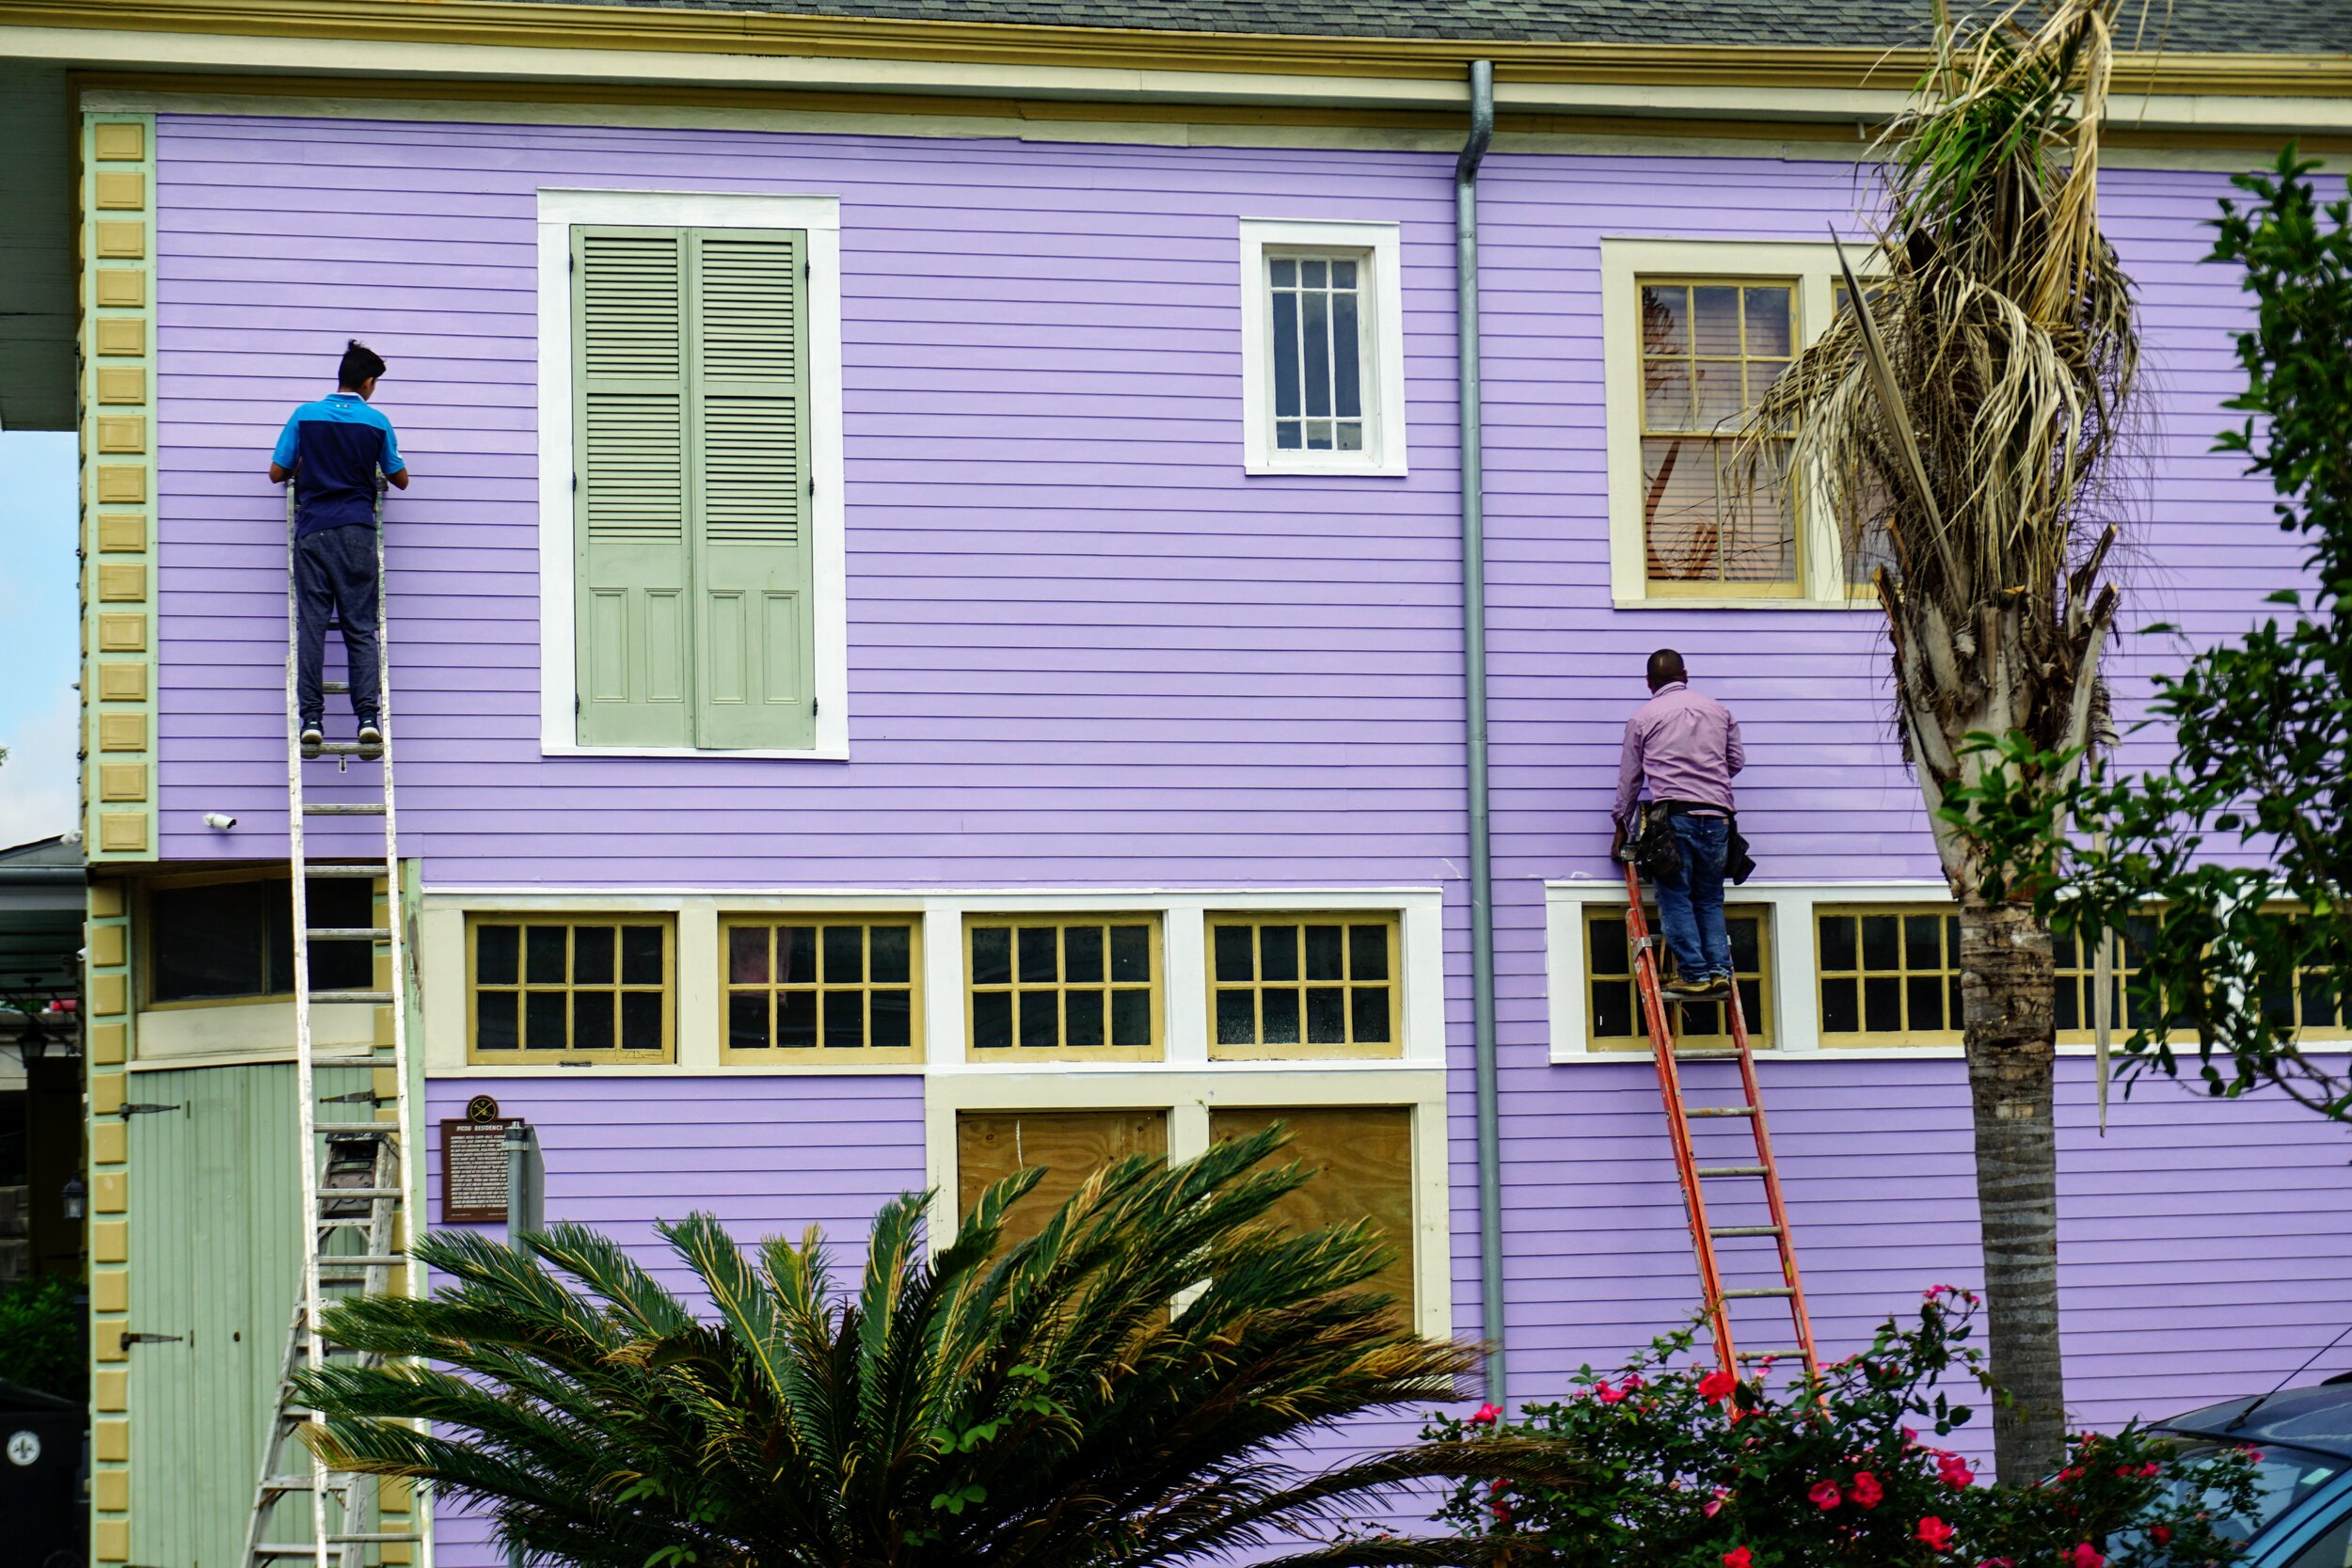 two people on ladders, painting a purple house for House of Tulip